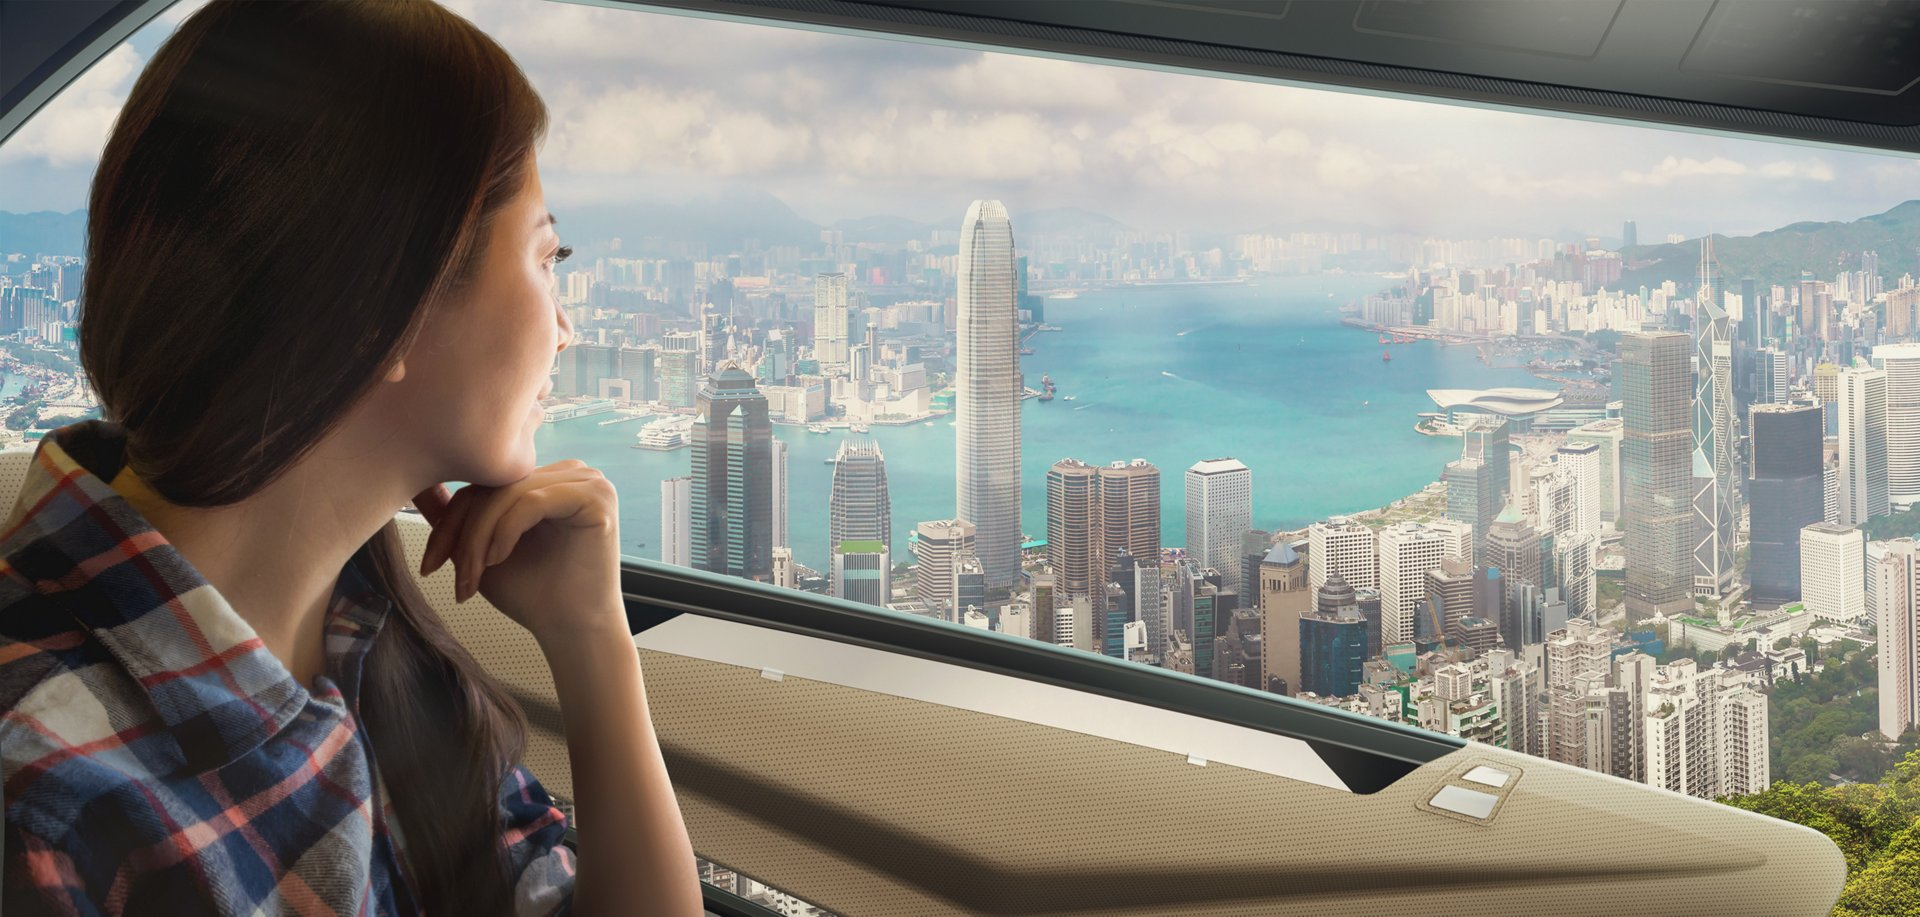 This futuristic image shows a passenger inside an Airbus electric vertical take-off and landing (eVTOL) vehicle, lookingout the window.